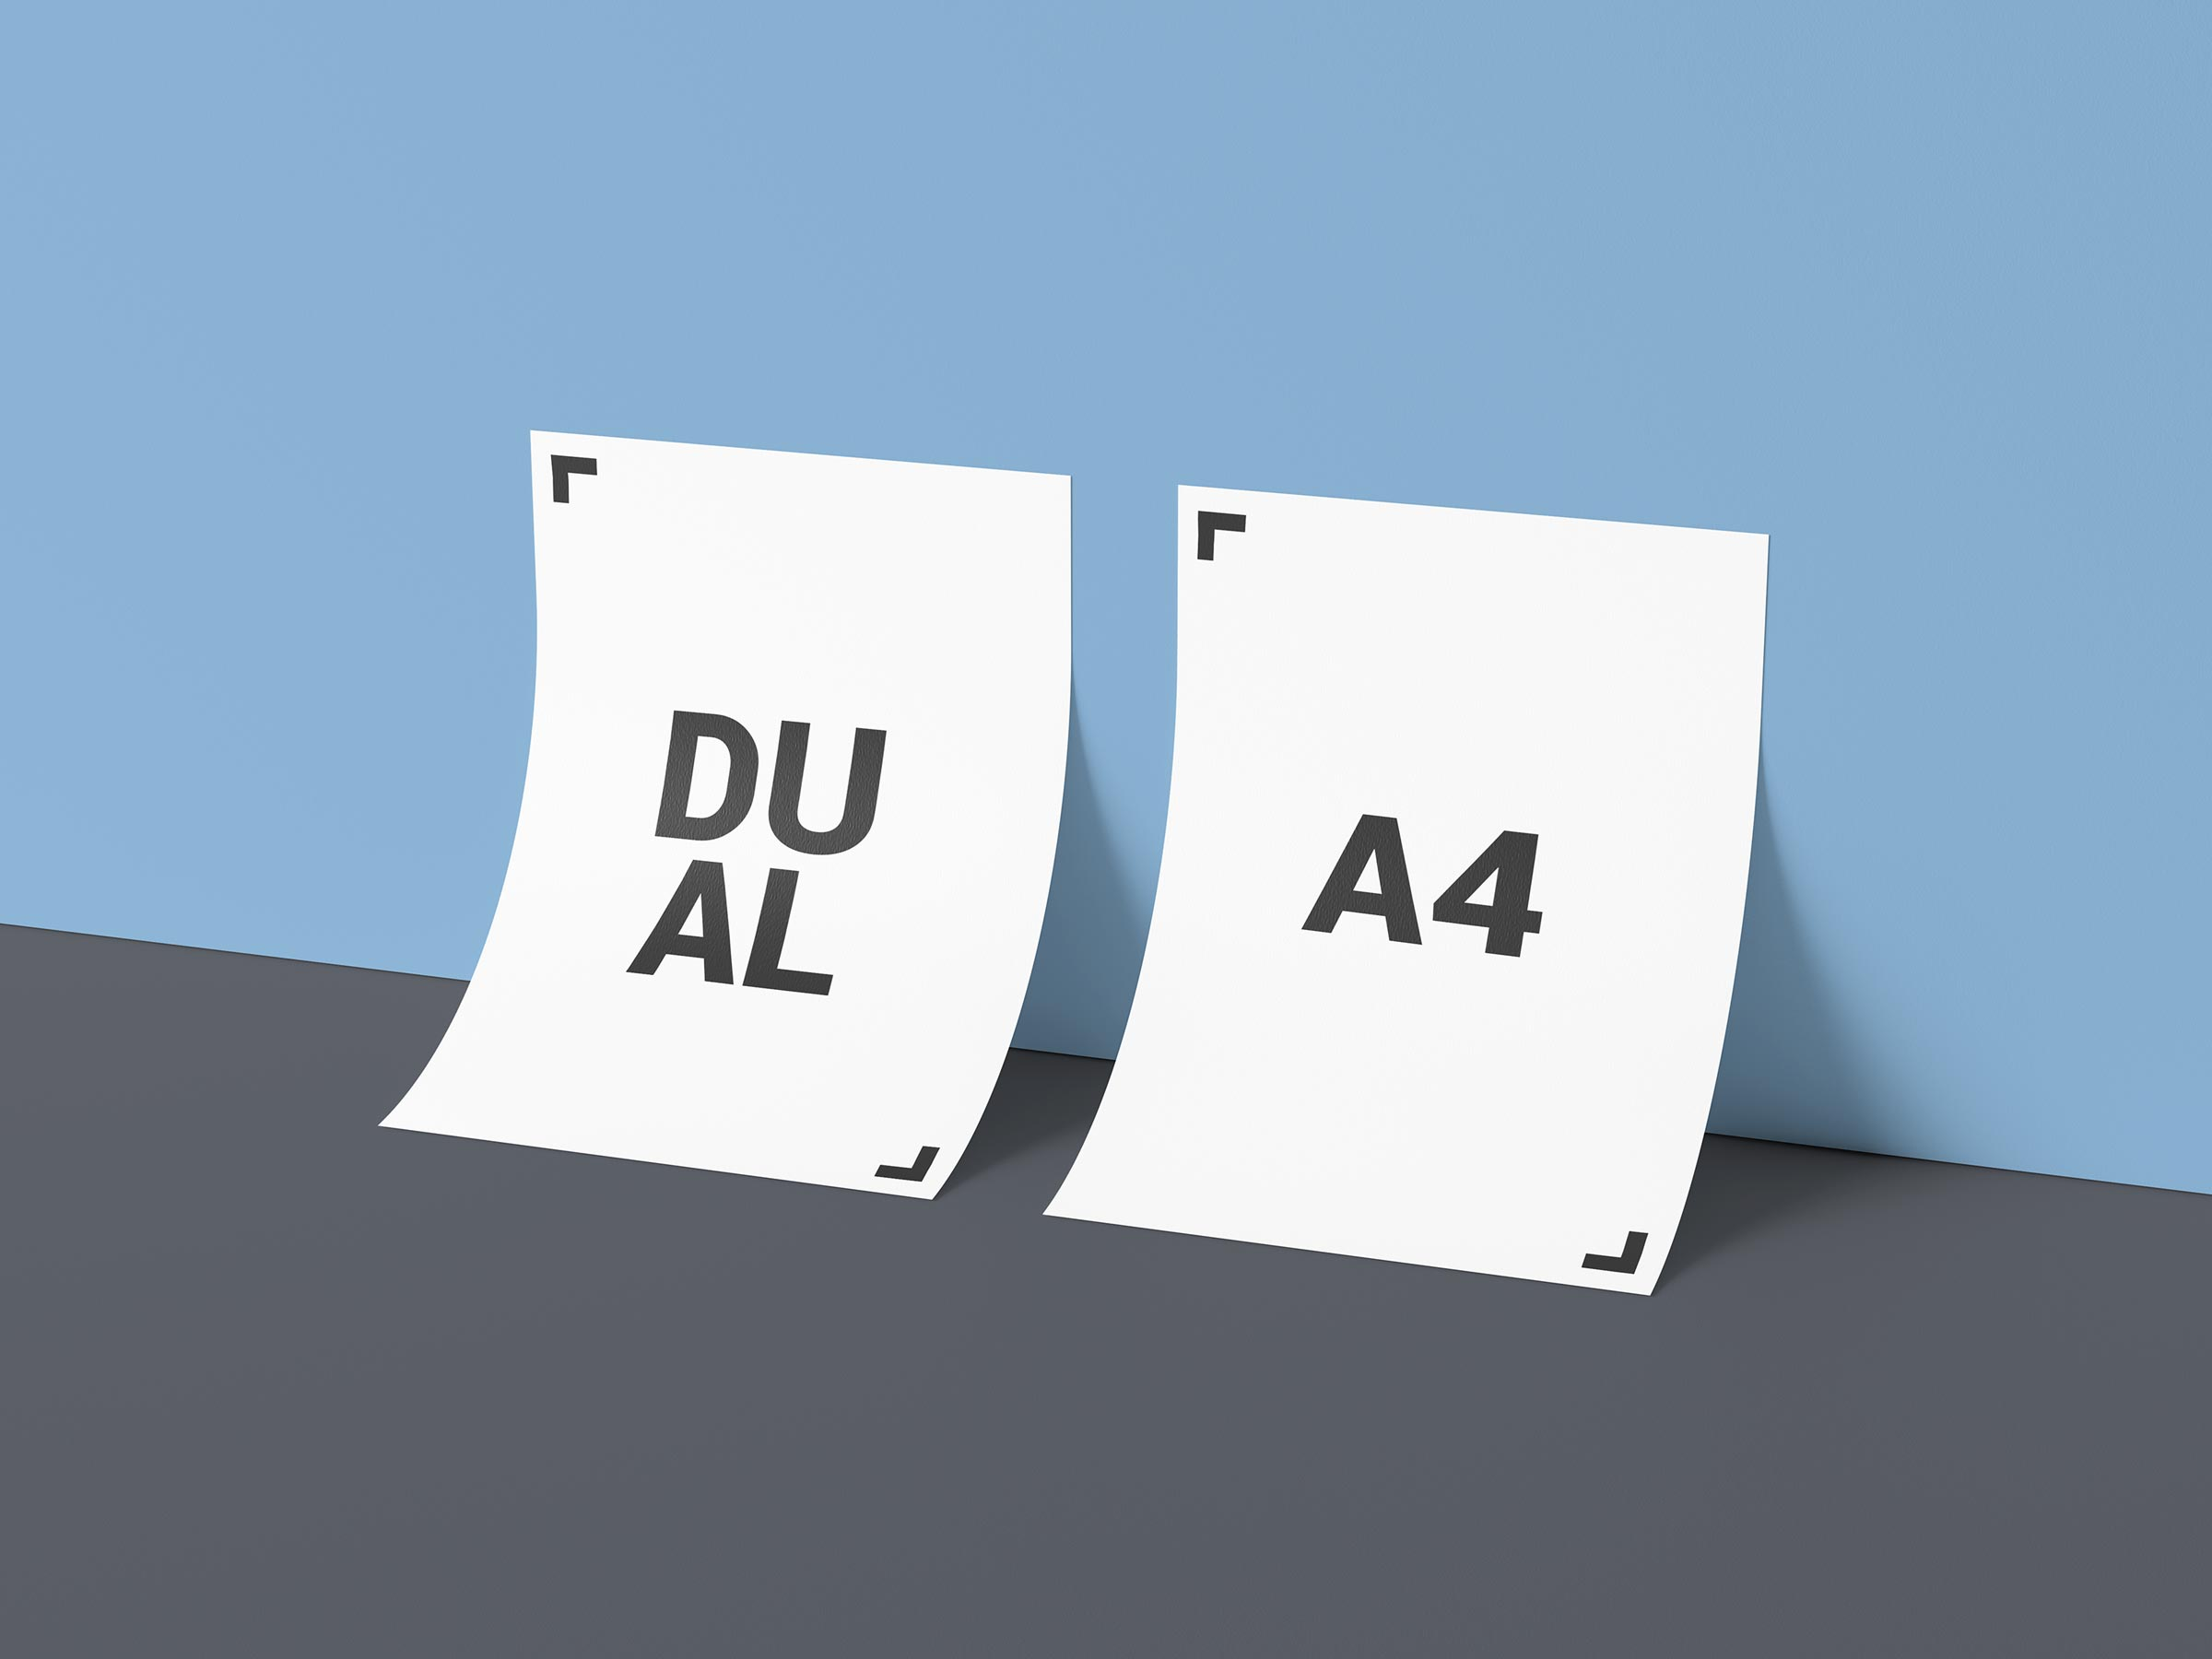 Free-Dual-A4-Paper-Against-Wall-Mockup-PSD-File